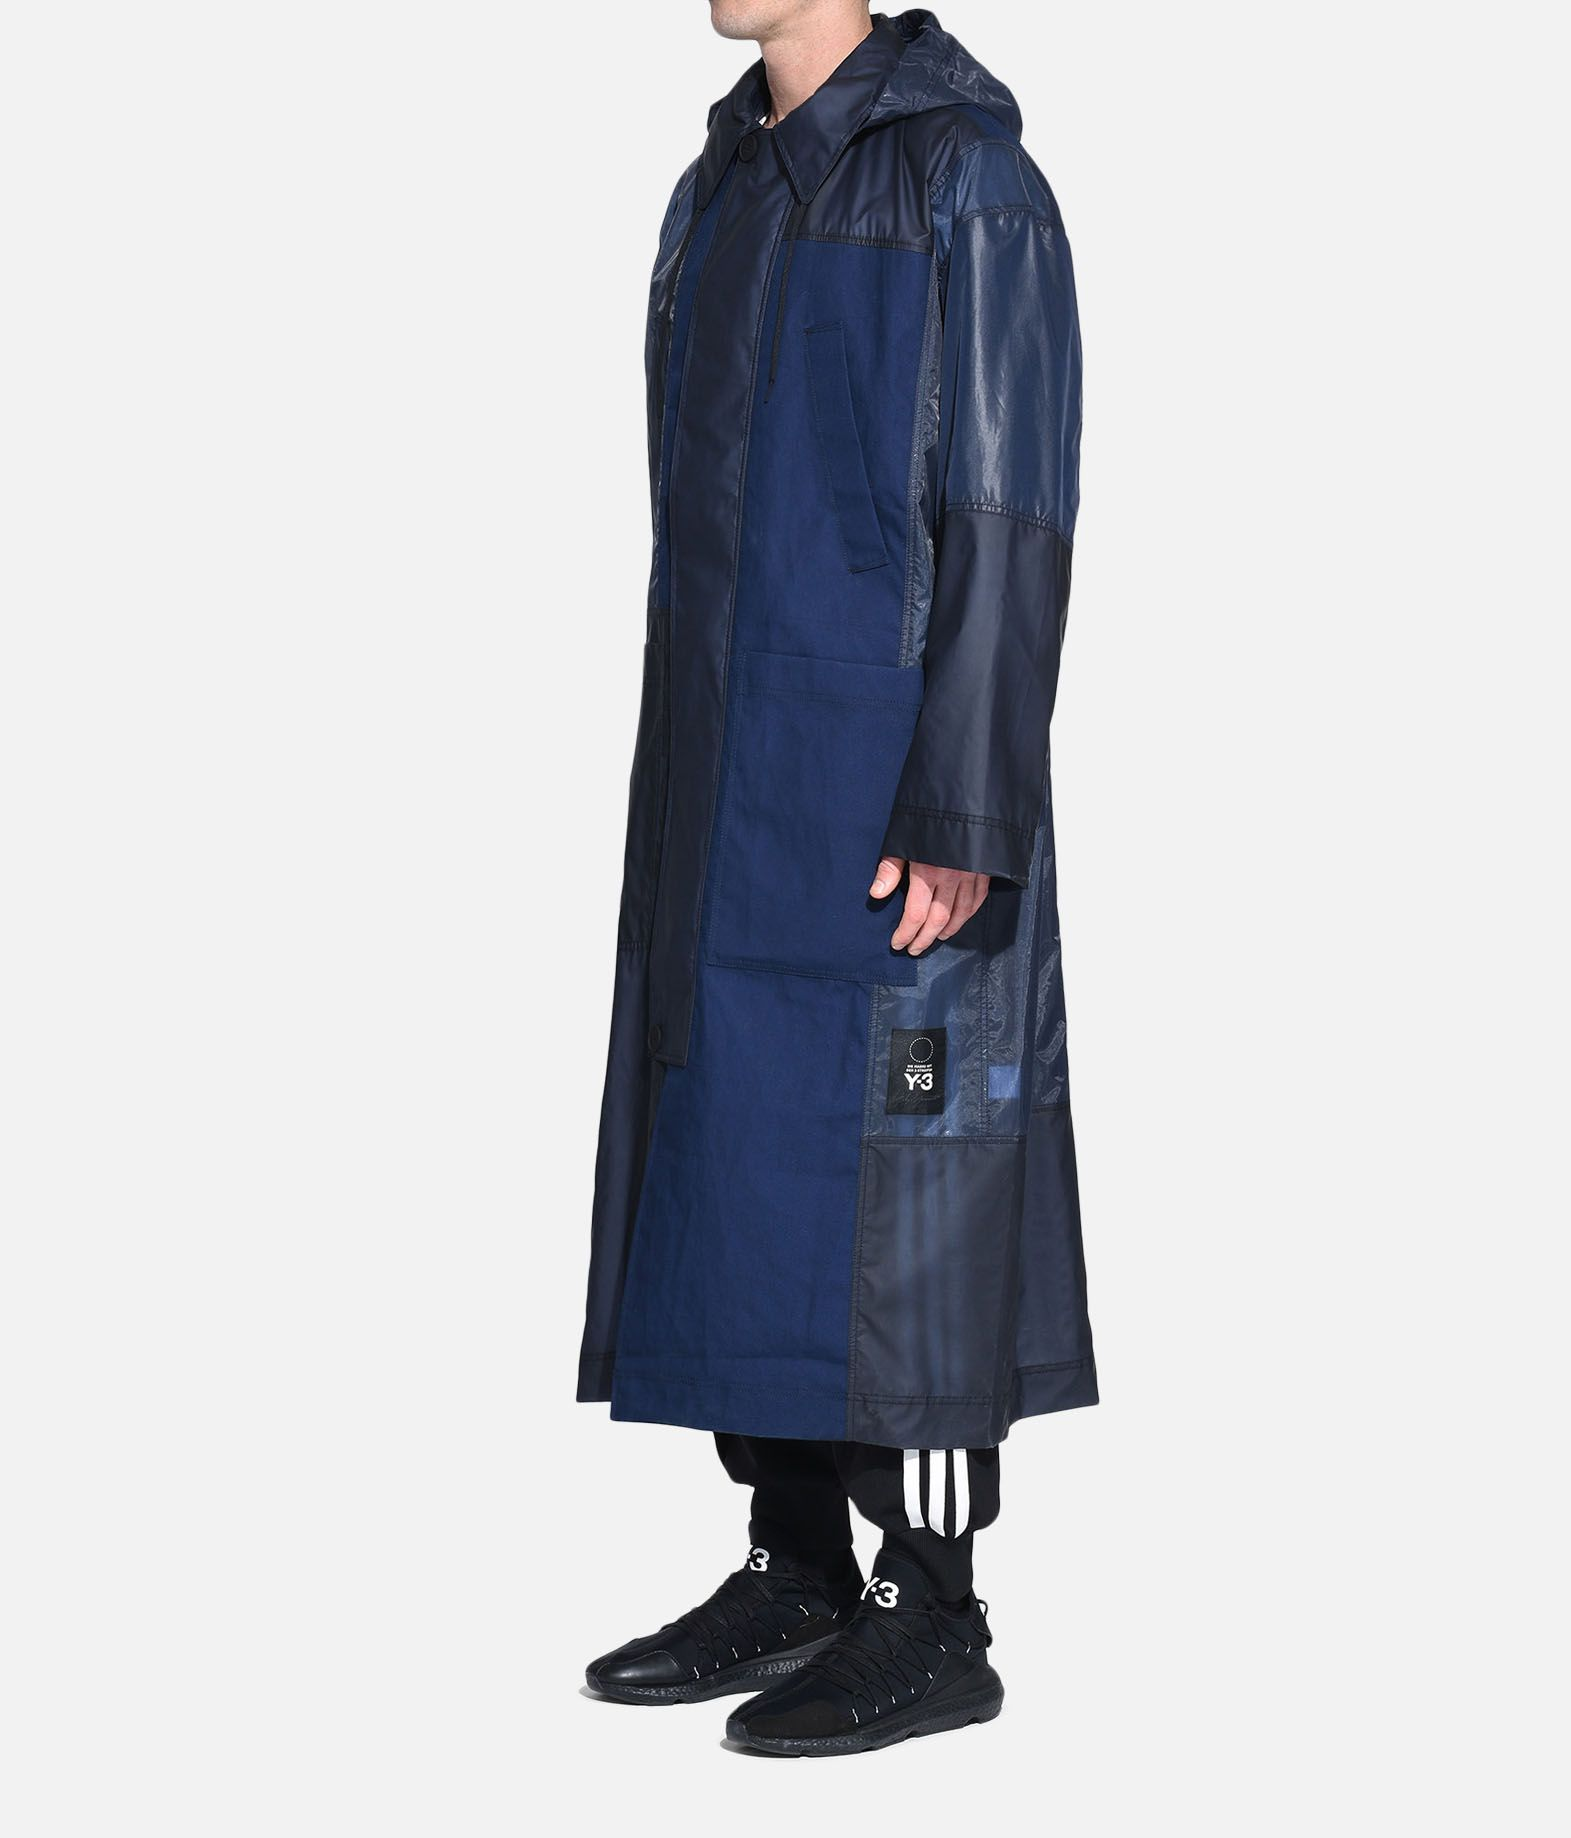 Y-3 Y-3 Patchwork Long Coat Cappotto Uomo e